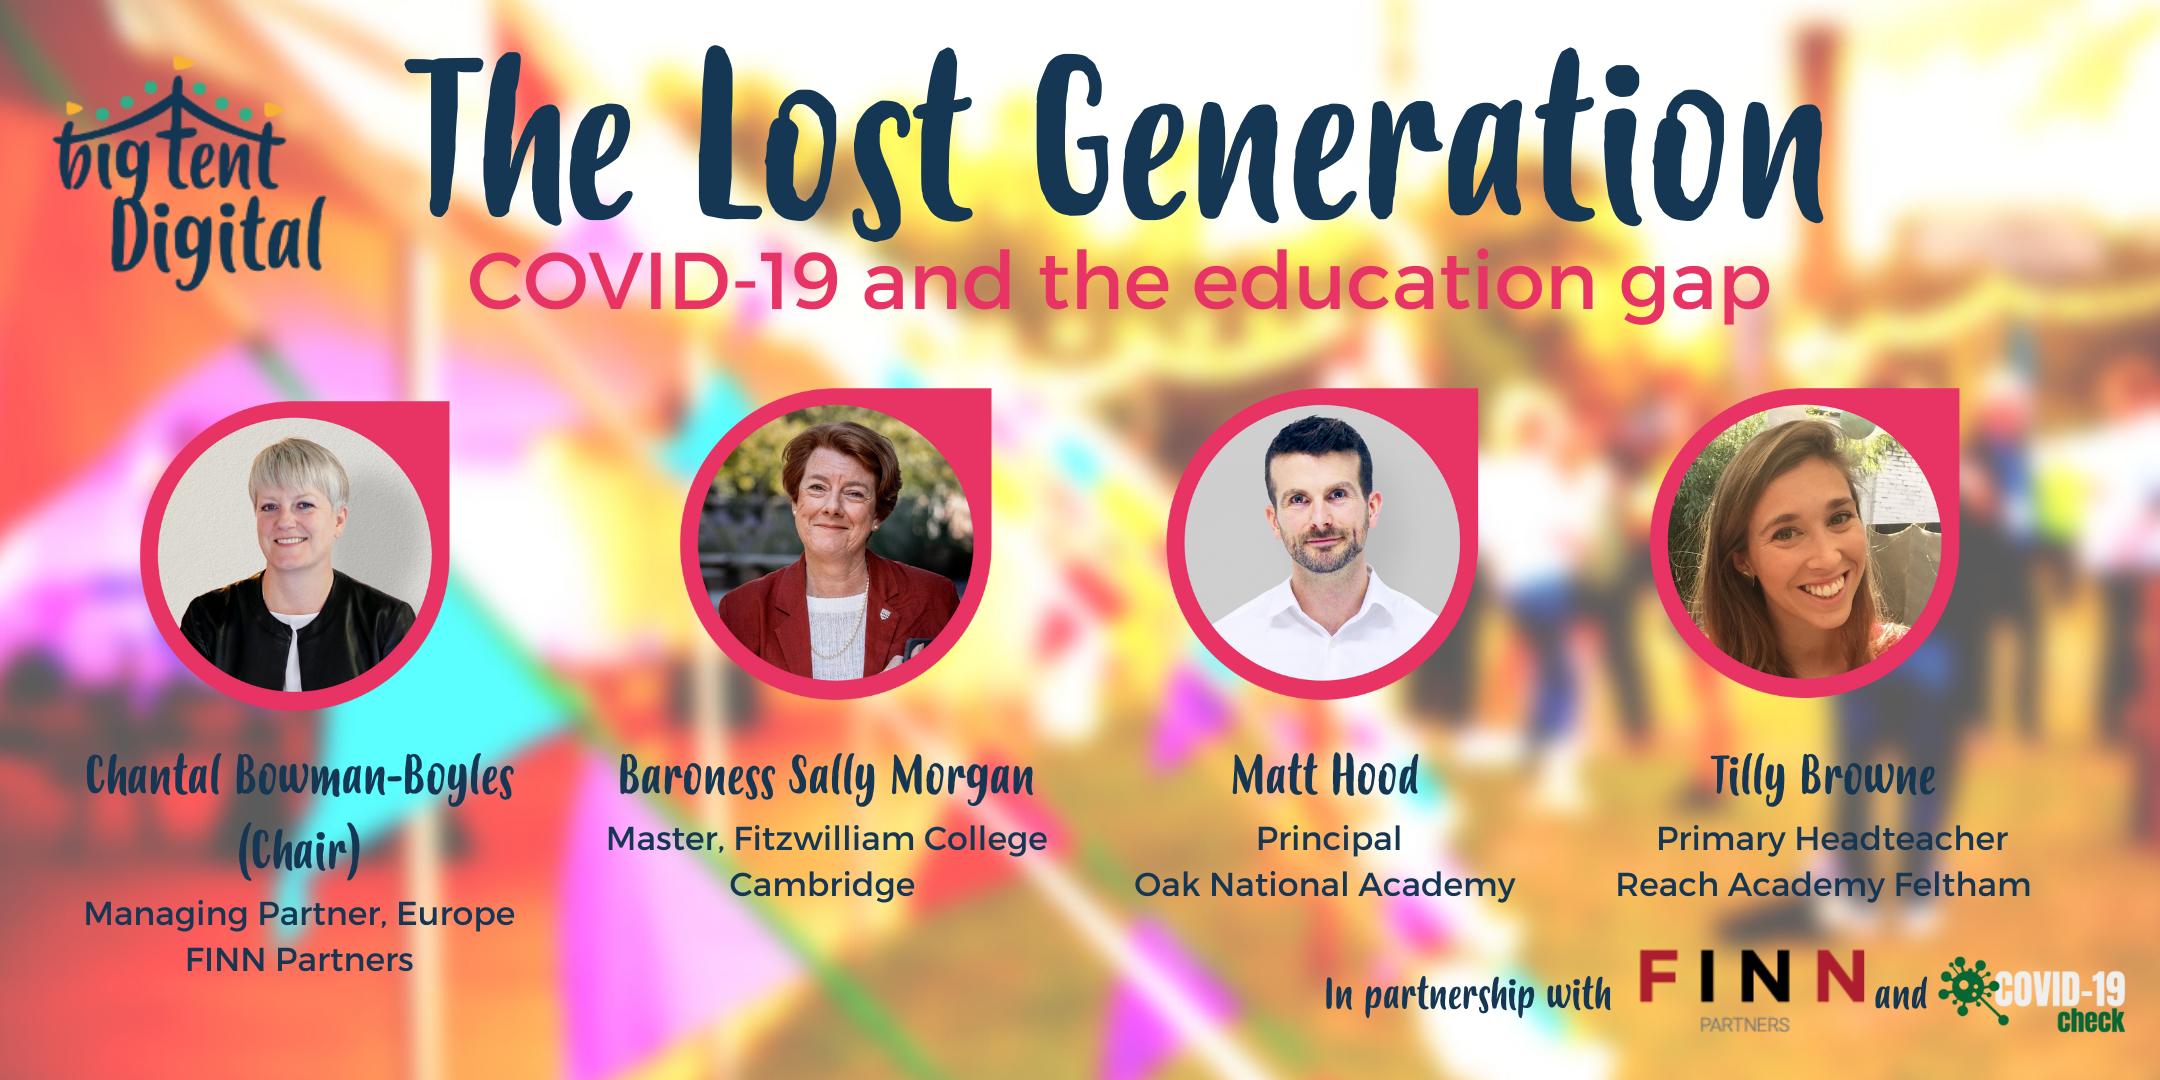 The lost generation: education experts discuss how to avoid a 'lost generation' of UK students